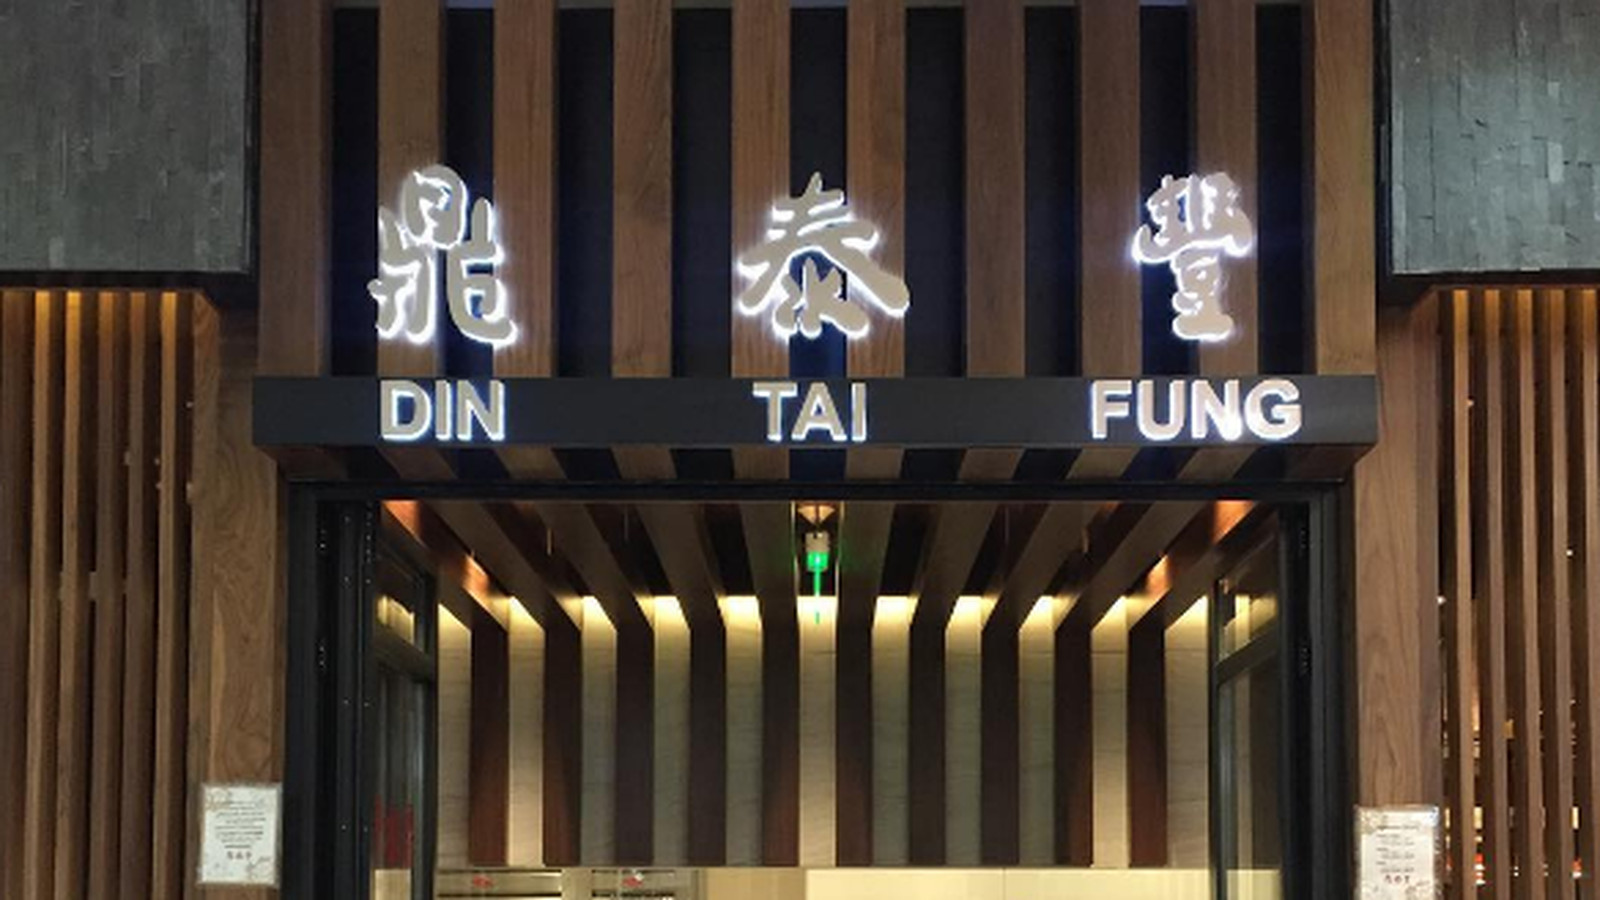 Craigslist Twin Cities >> Din Tai Fung Reservations Now Going for $50 on Craigslist ...